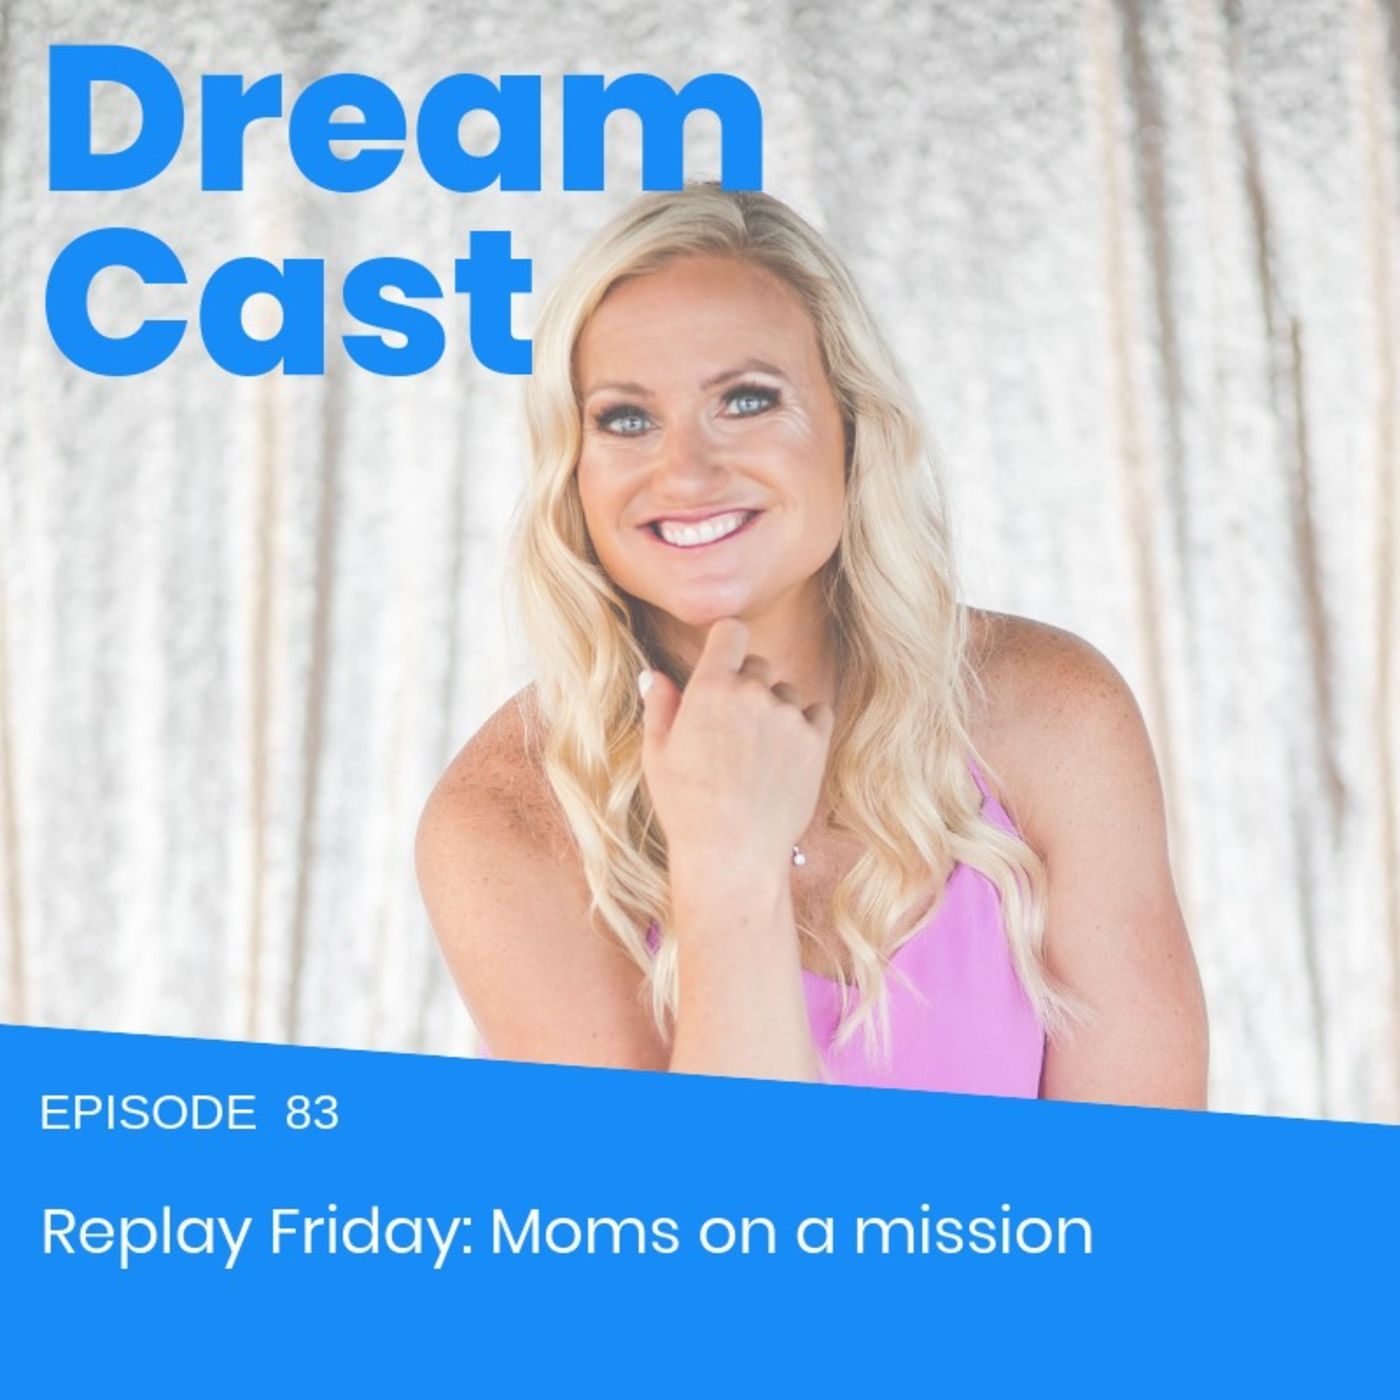 Episode 83 - Replay Friday: Moms on a Mission